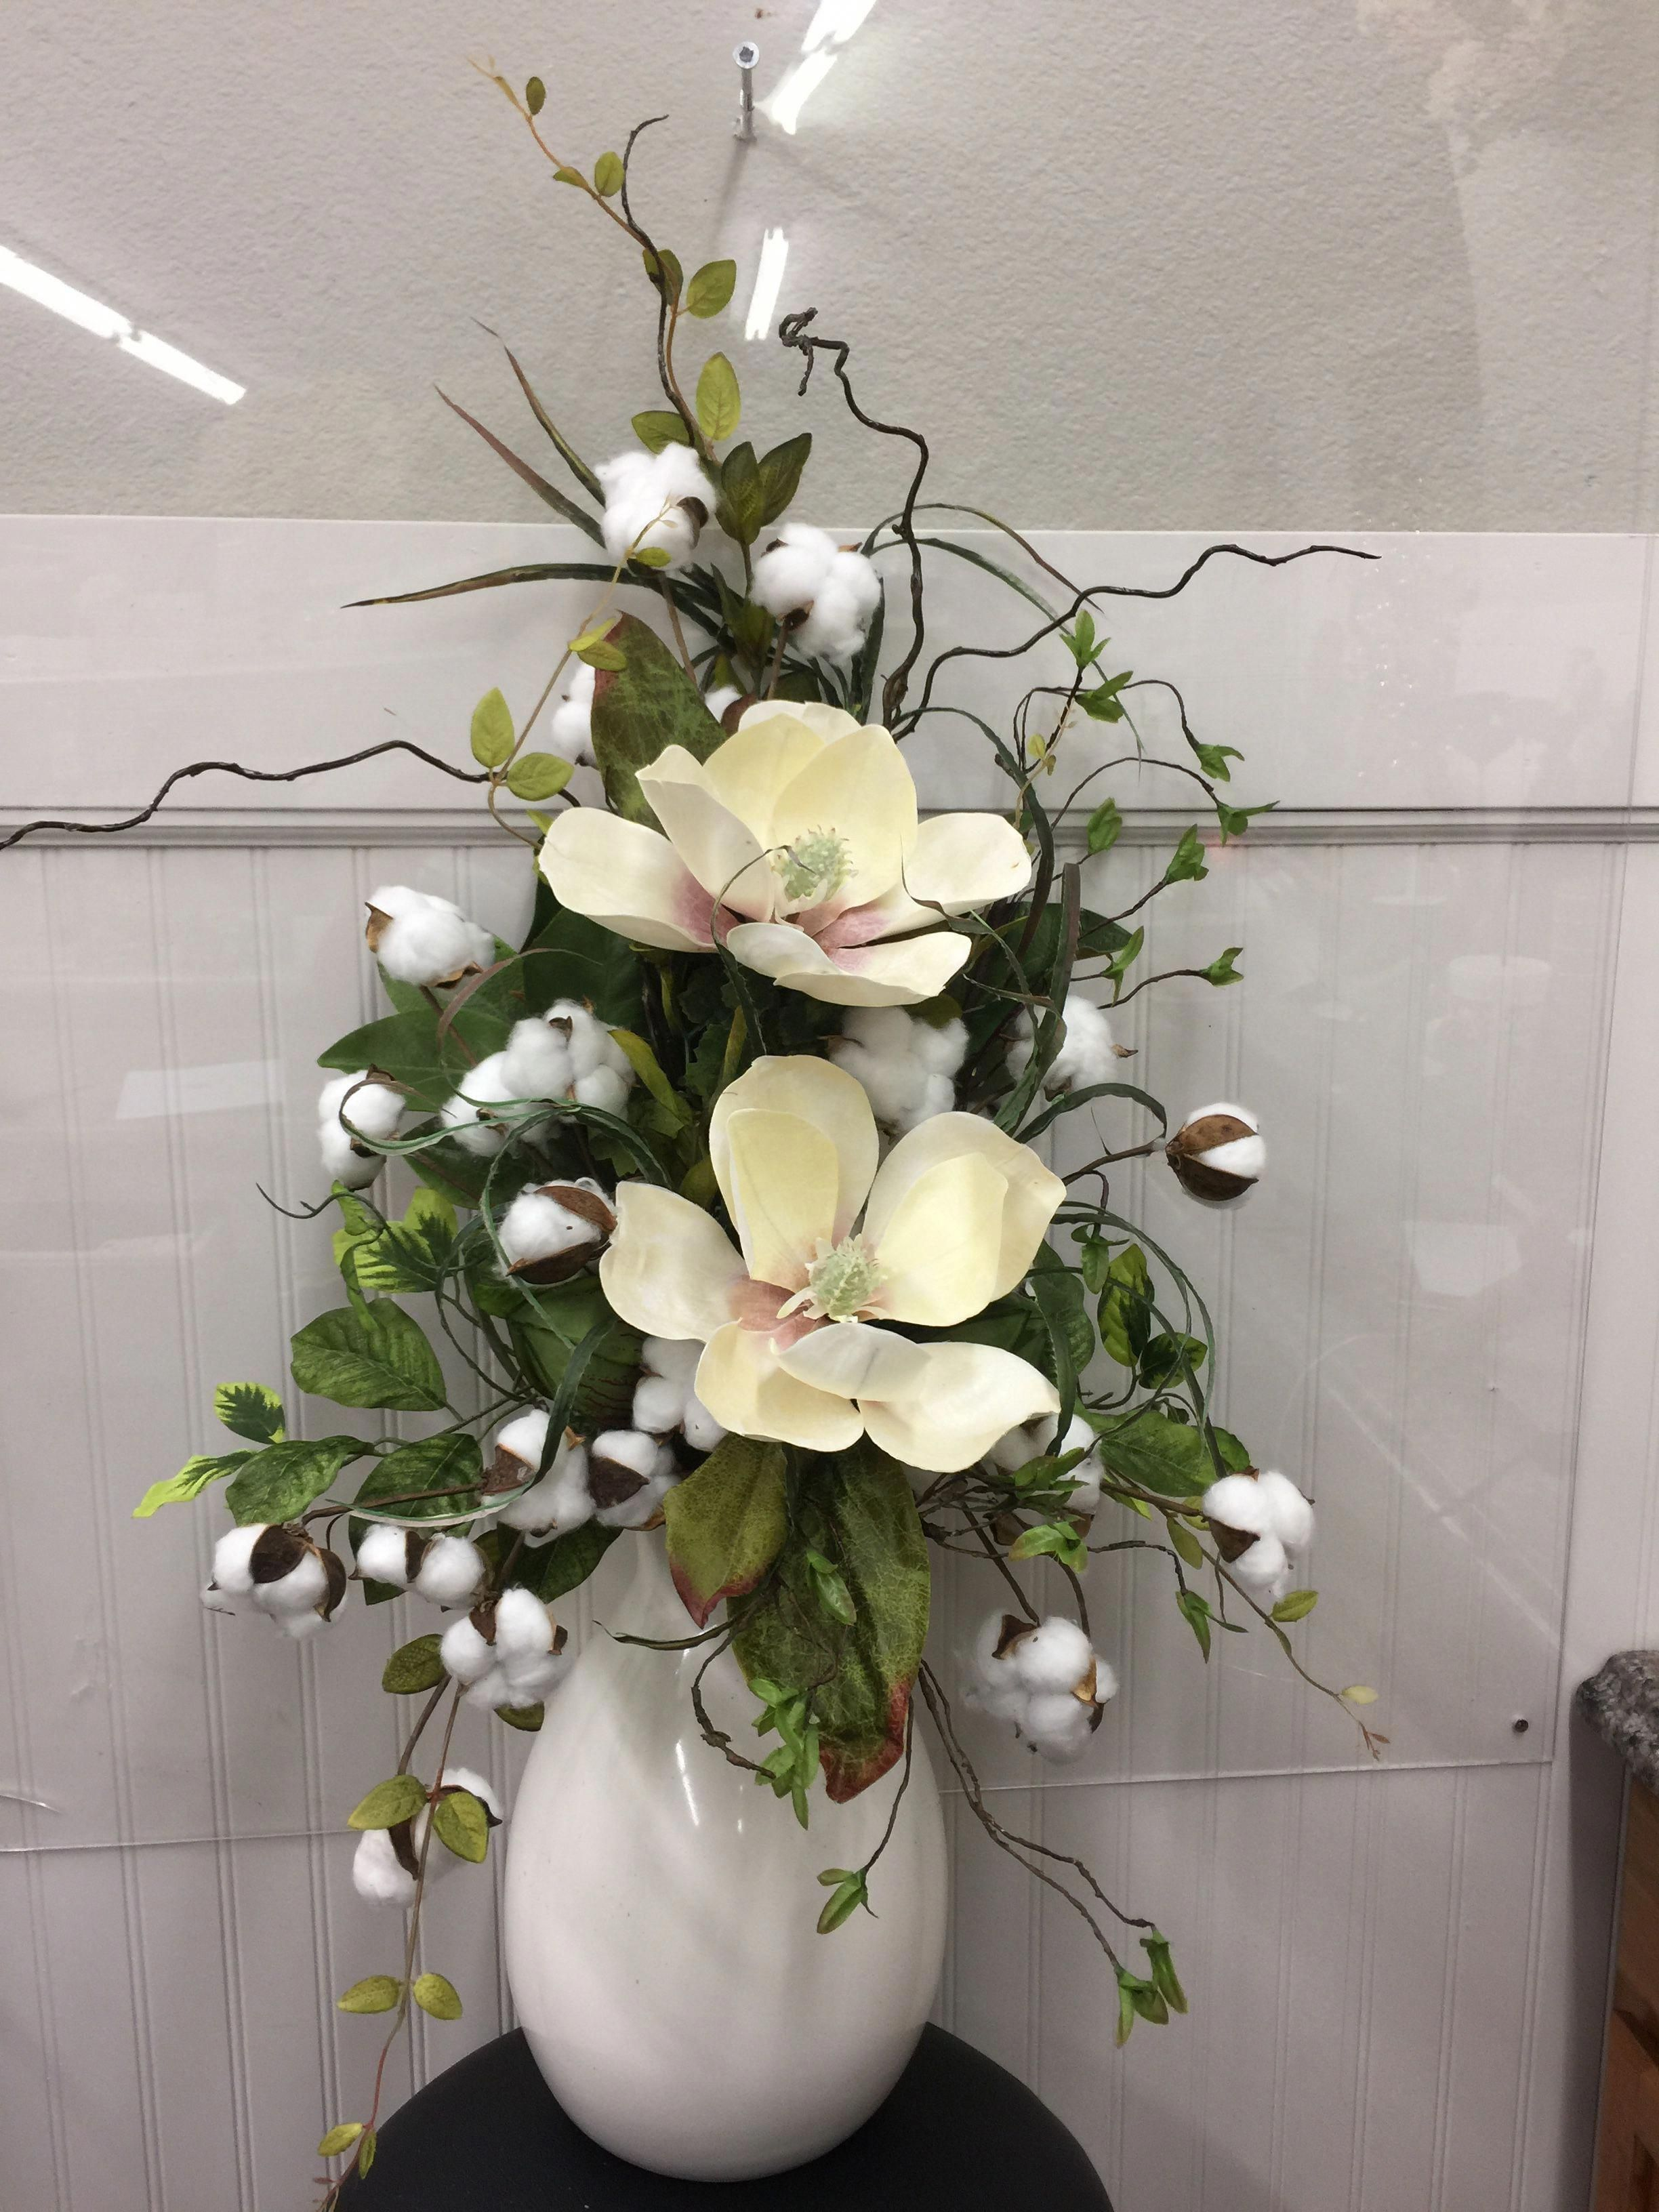 11117 Cream Magnolias In Vase With Cotton Curly Willow And Mixed Greenery Large Flower Arrangements Artificial Flower Arrangements Flower Vase Arrangements